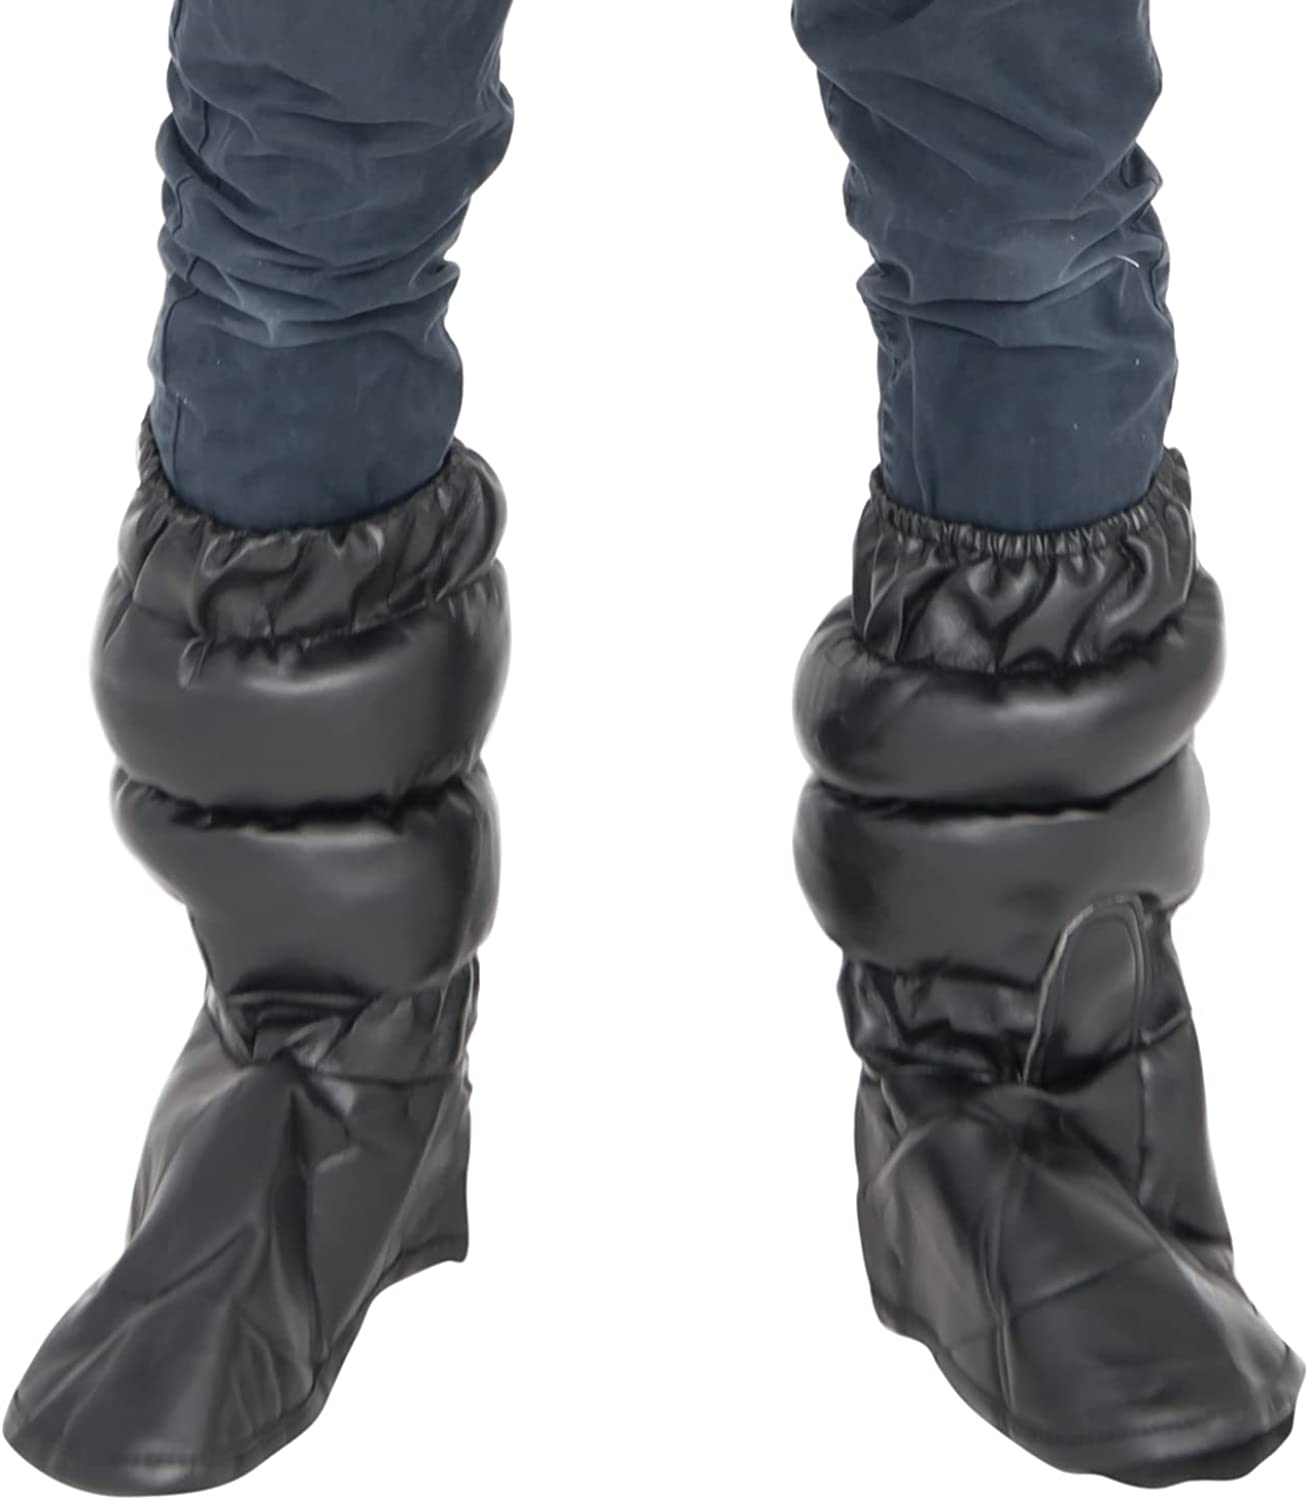 Napoleon Dynamite OFFicial store Costume Boots Spasm price Moon